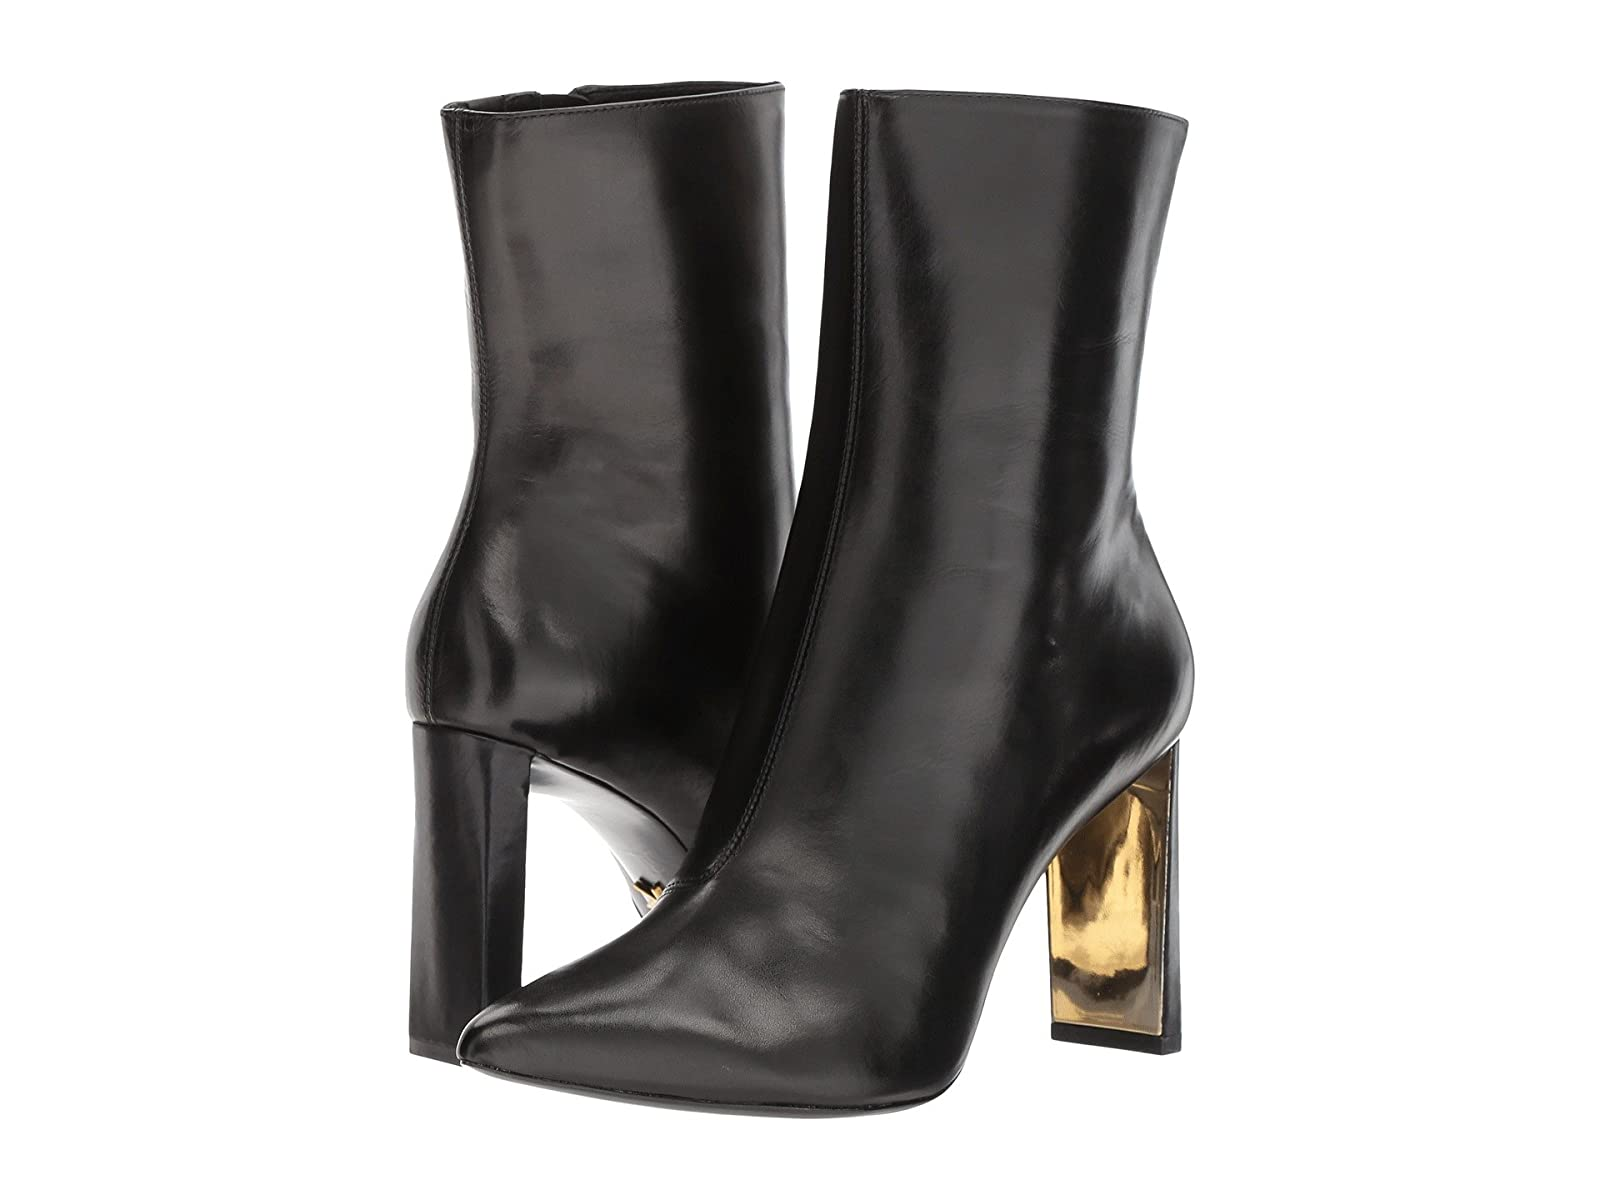 Donna Karan Chelsea Mid Calf BootCheap and distinctive eye-catching shoes